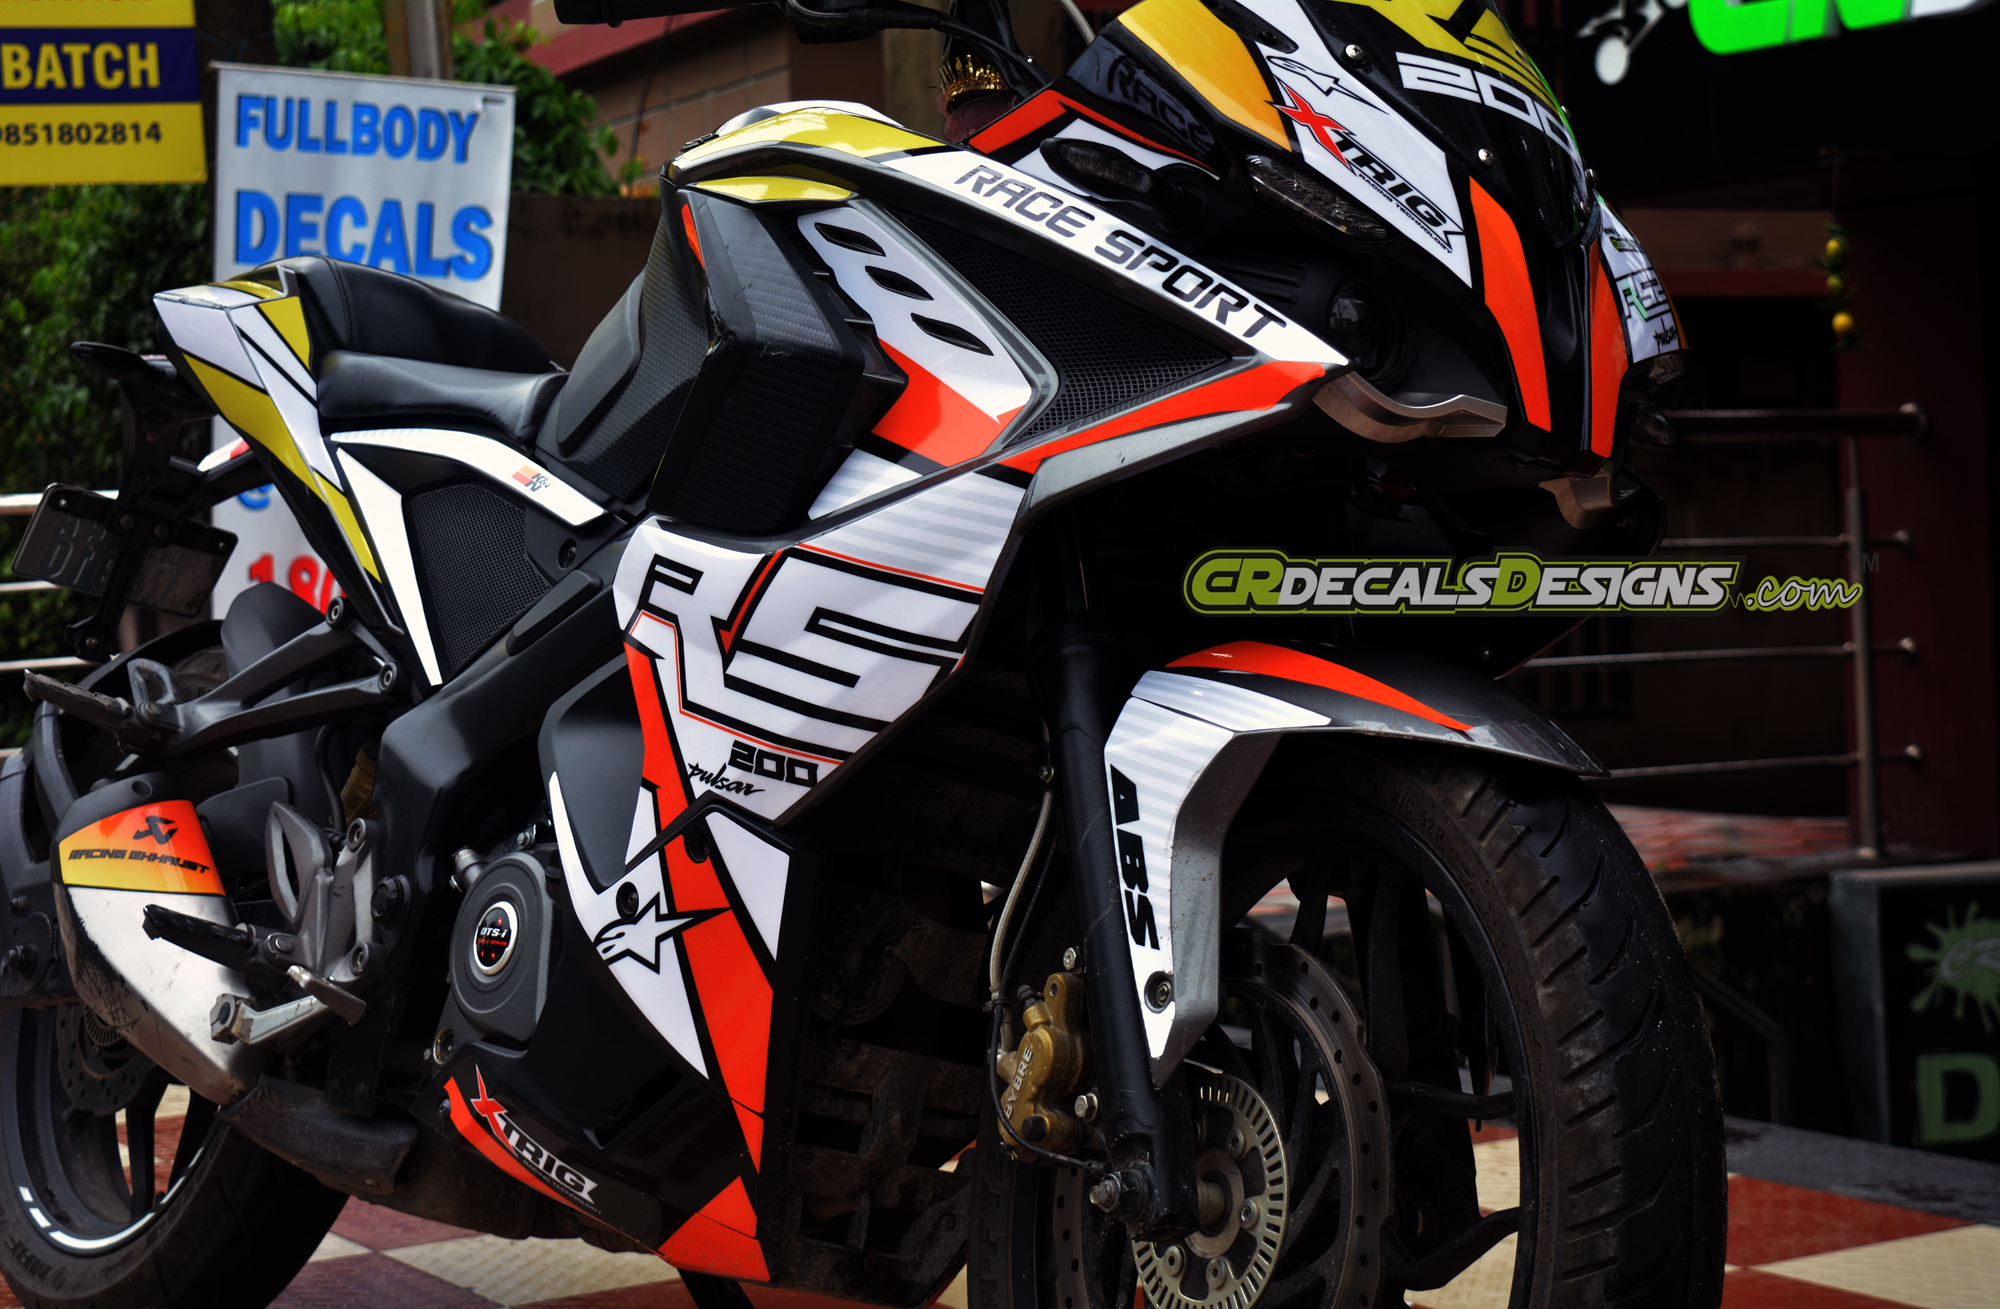 Pulsar rs 200 price